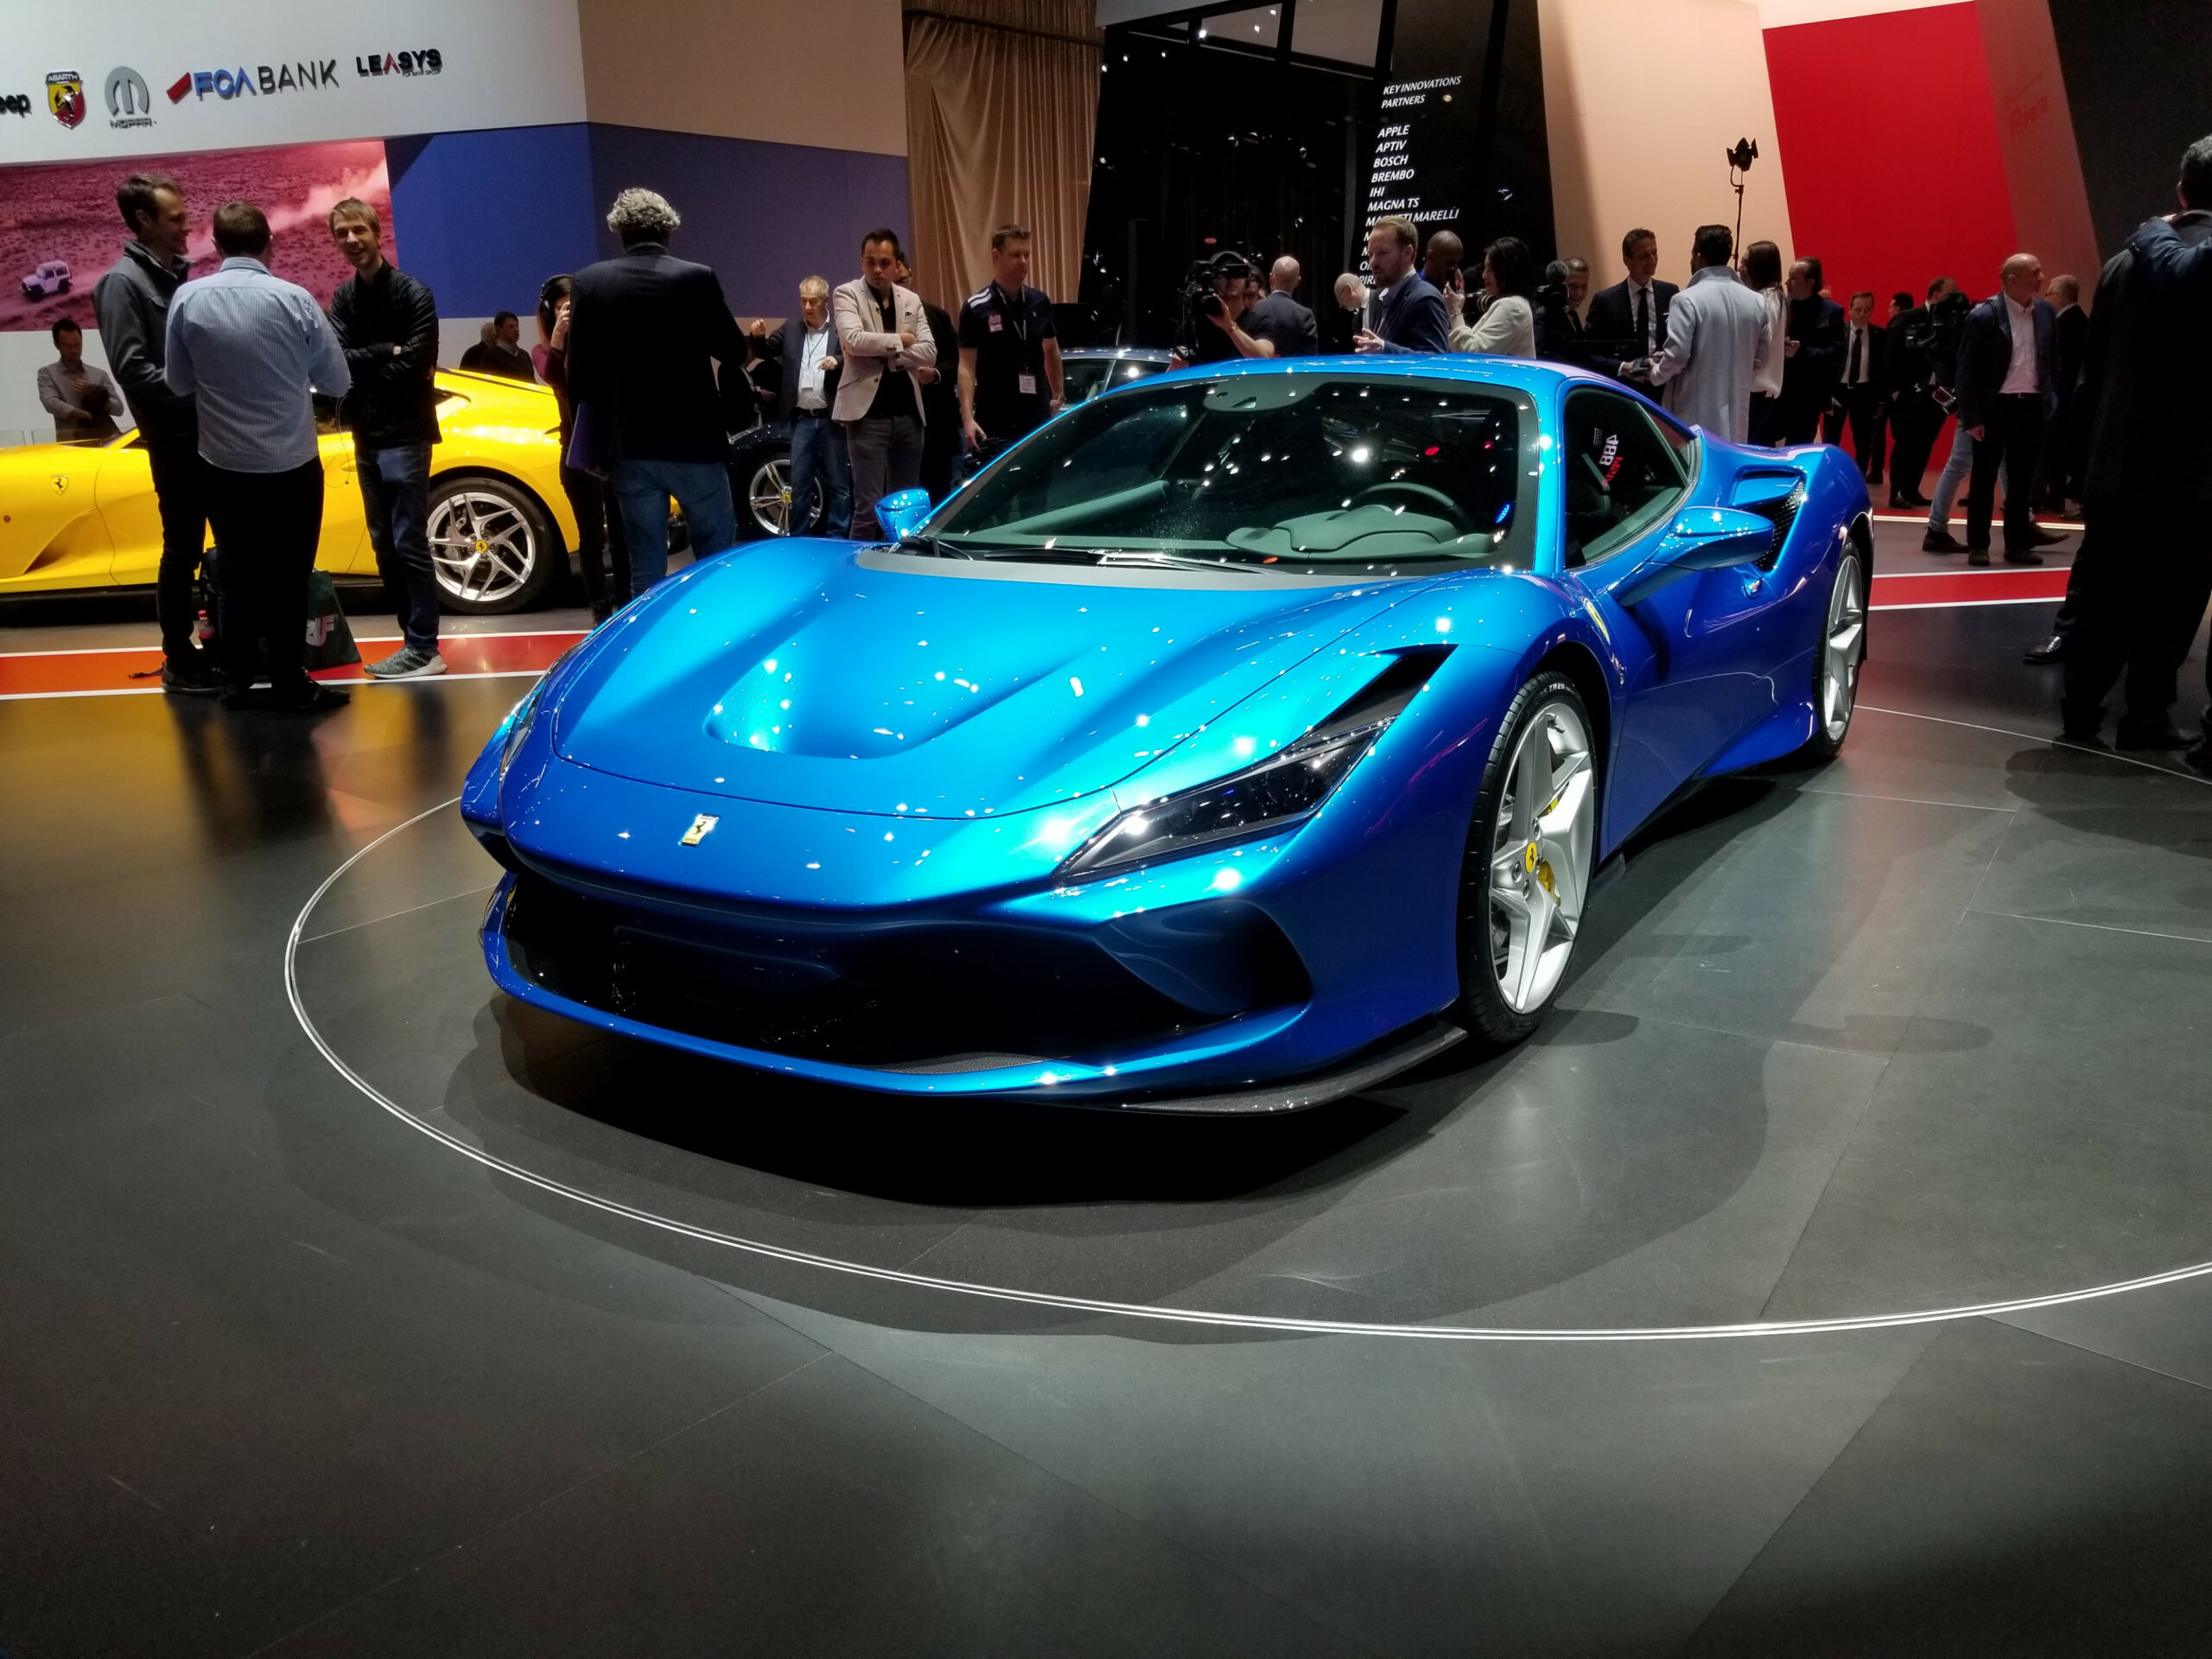 The 7 Ferrari F7 Tributo Looks Amazing, Heralds Good Things For ..